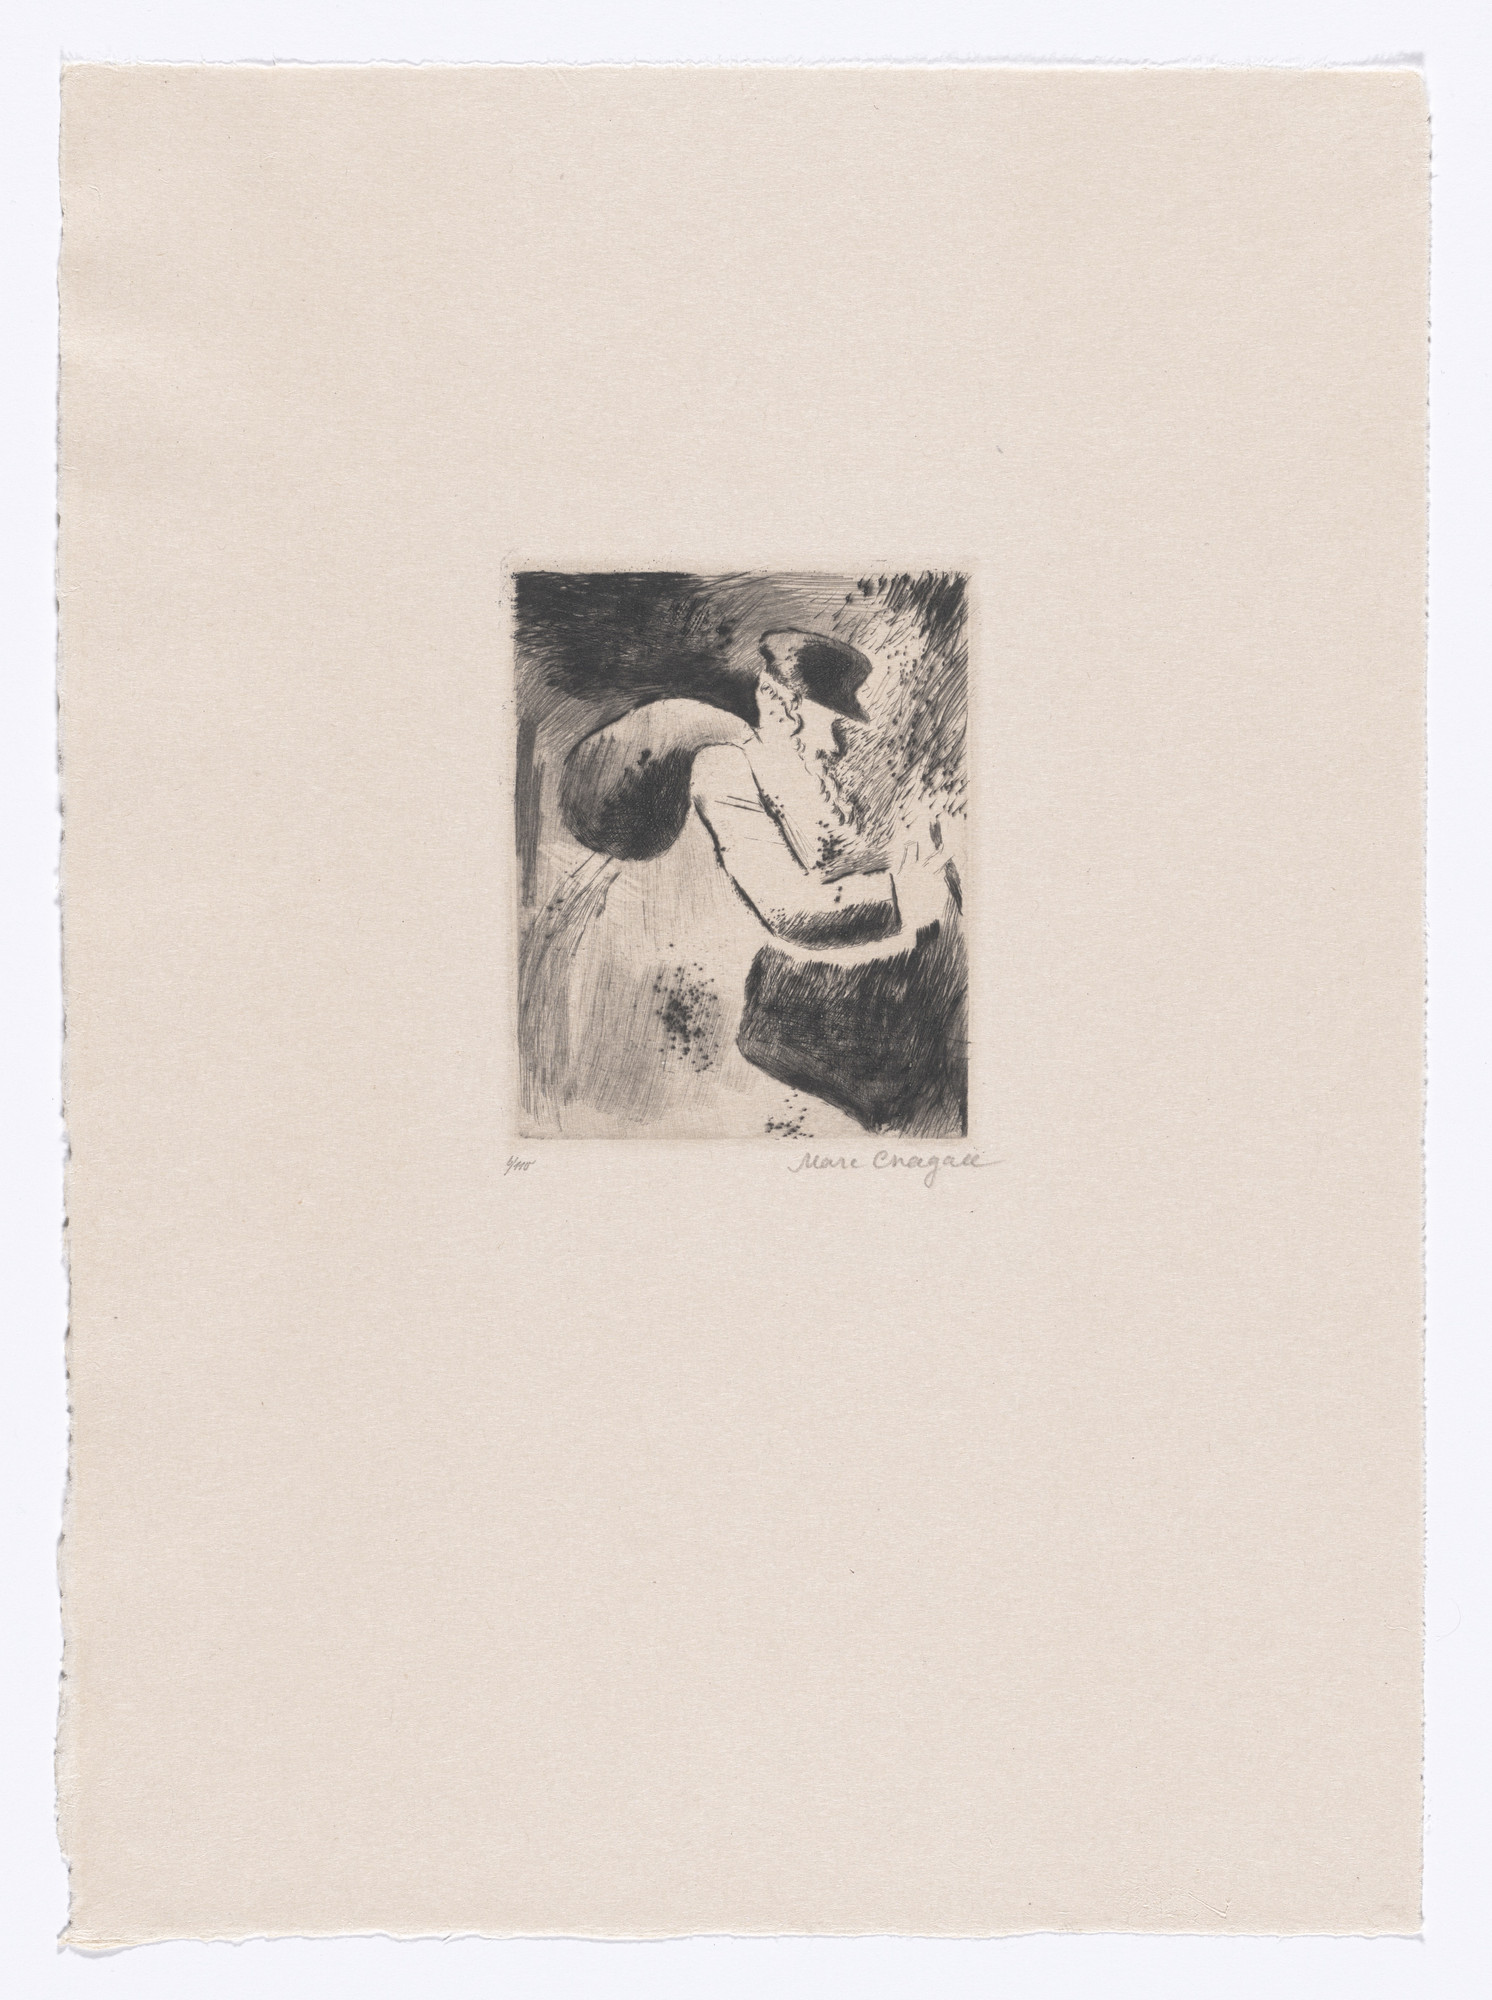 Marc Chagall. An Old Jew (Ein alter Jude) from My Life (Mein Leben). 1922, published 1923